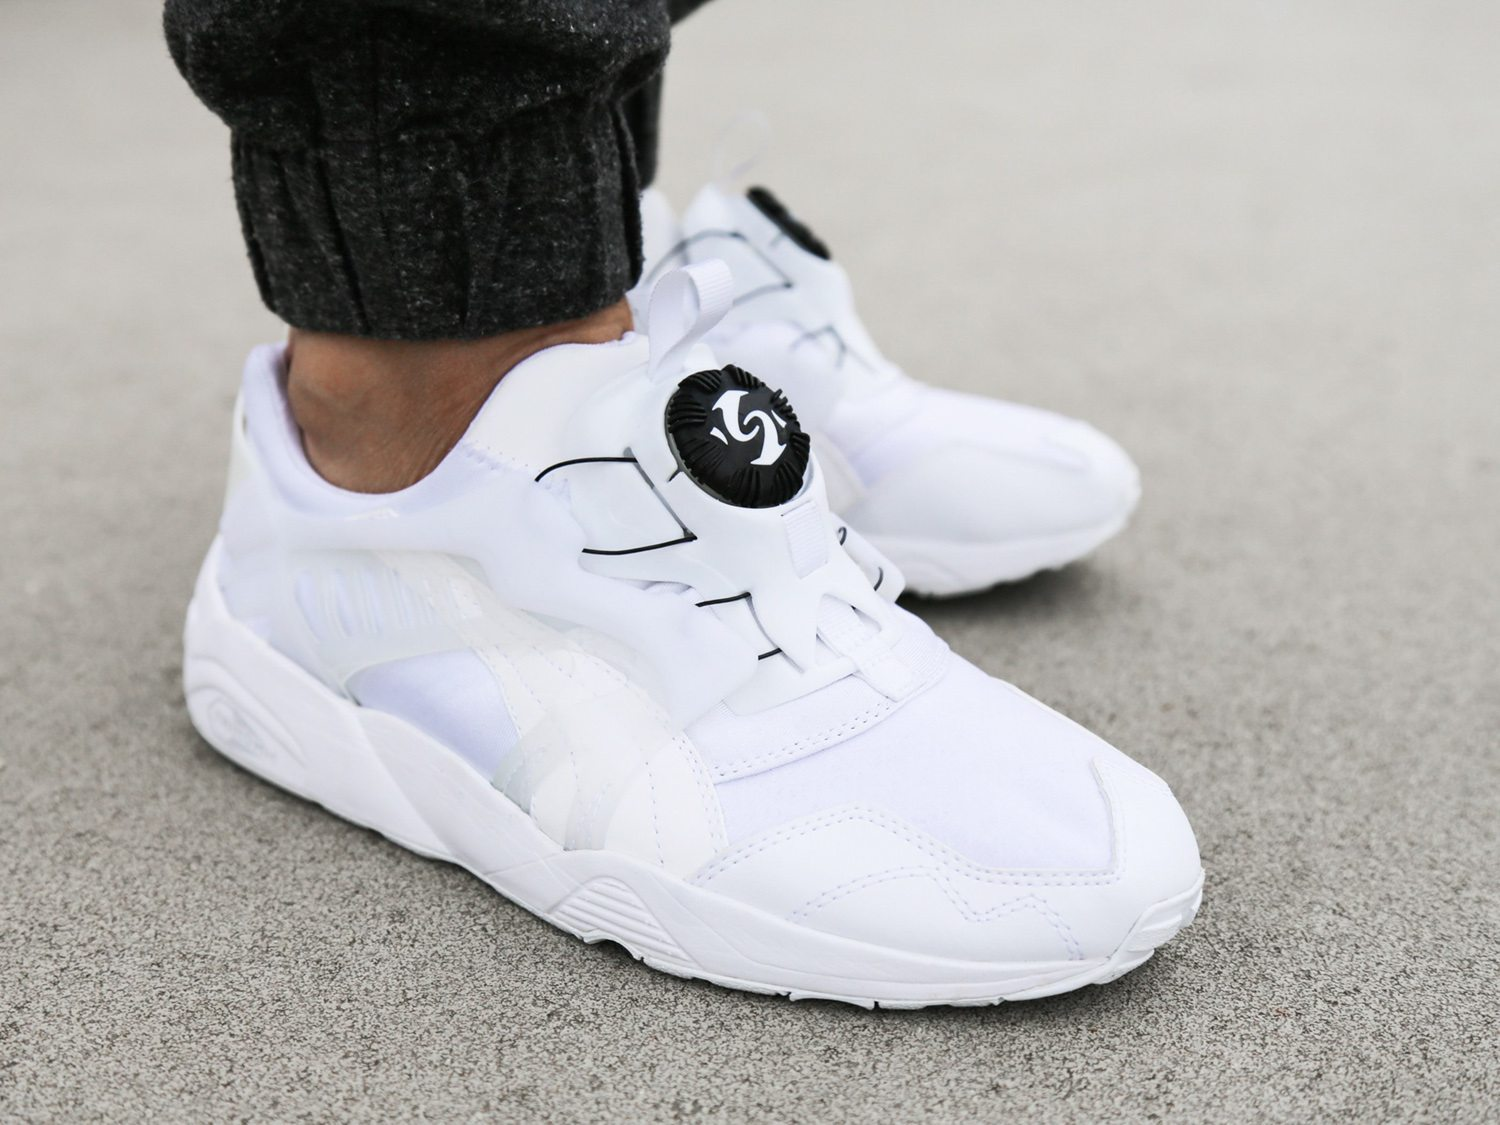 PUMA-Trinomic-Spring-Summer-2015-Black-&-White-Collection-23